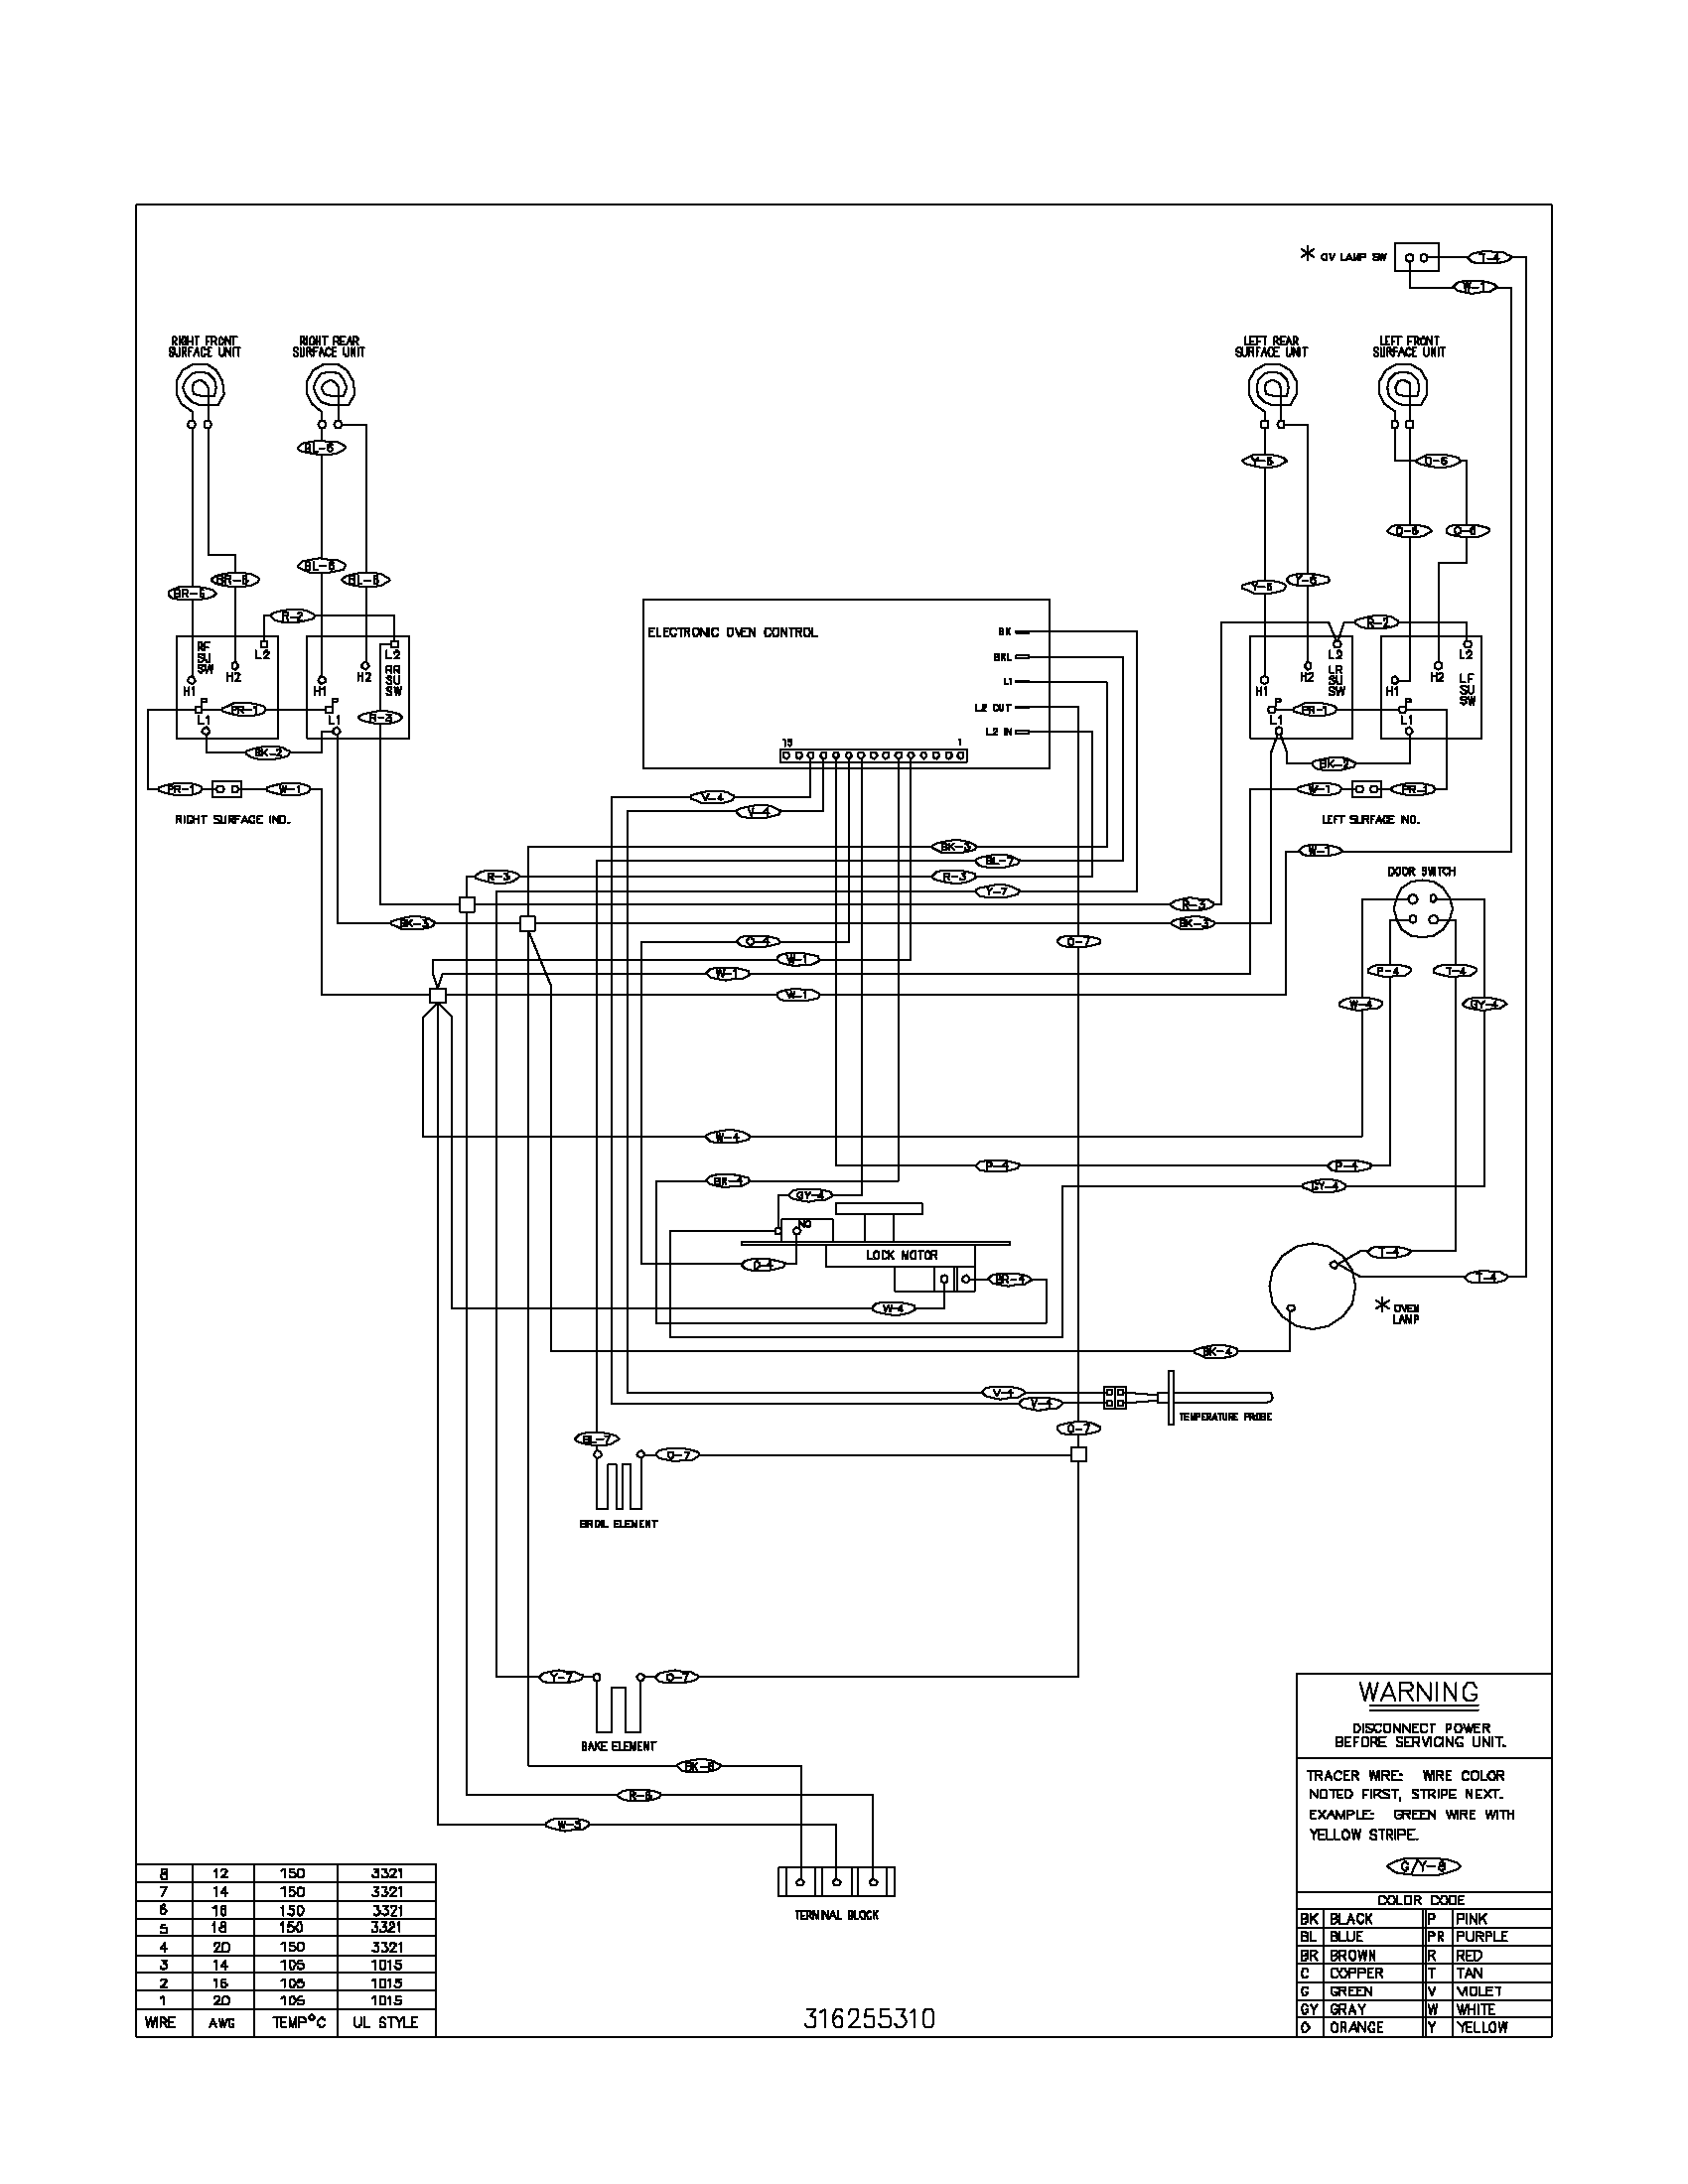 jx56 ge stove wiring diagram wires explained wiring diagrams ge electric cooktop  wiring-diagram ge